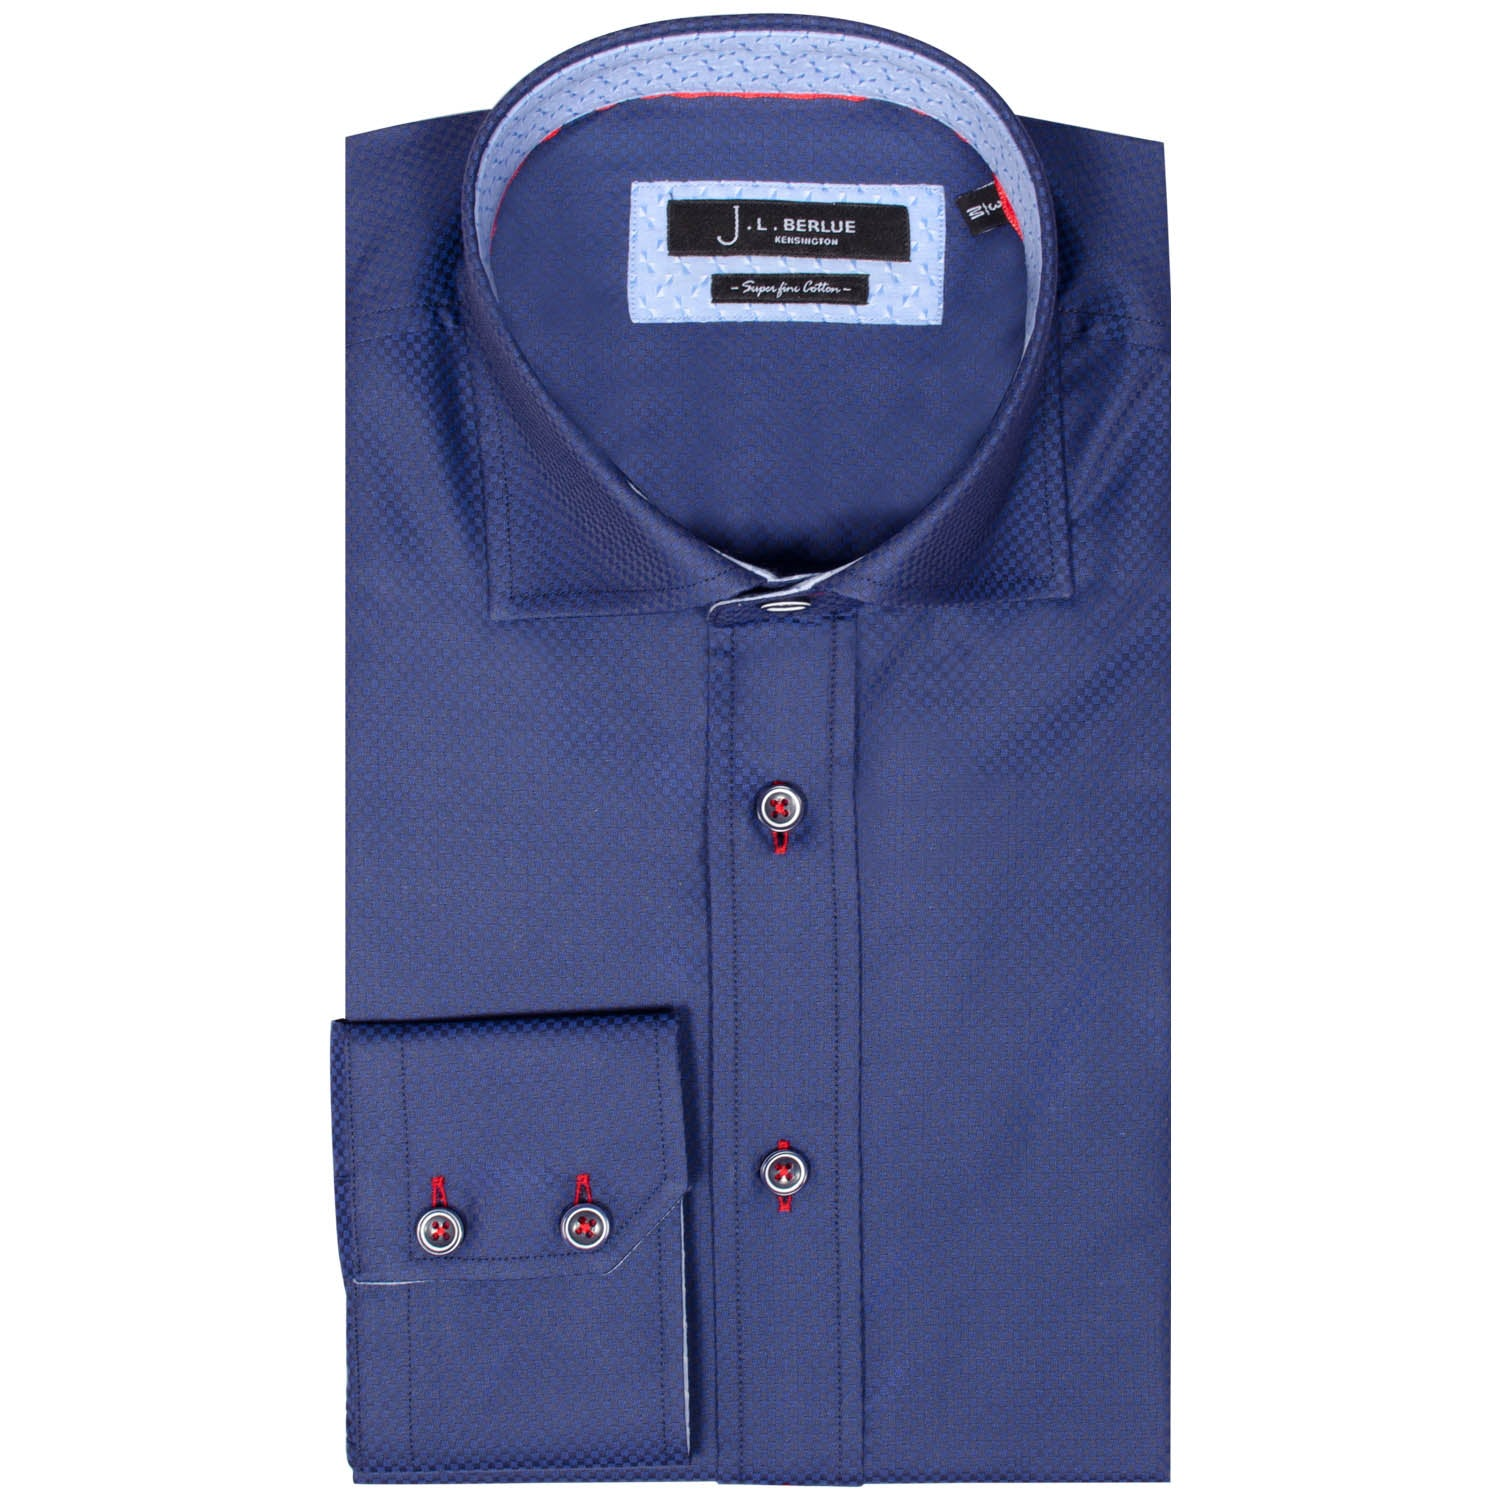 Premium Formal Long Sleeve Shirt – ODION - Navy